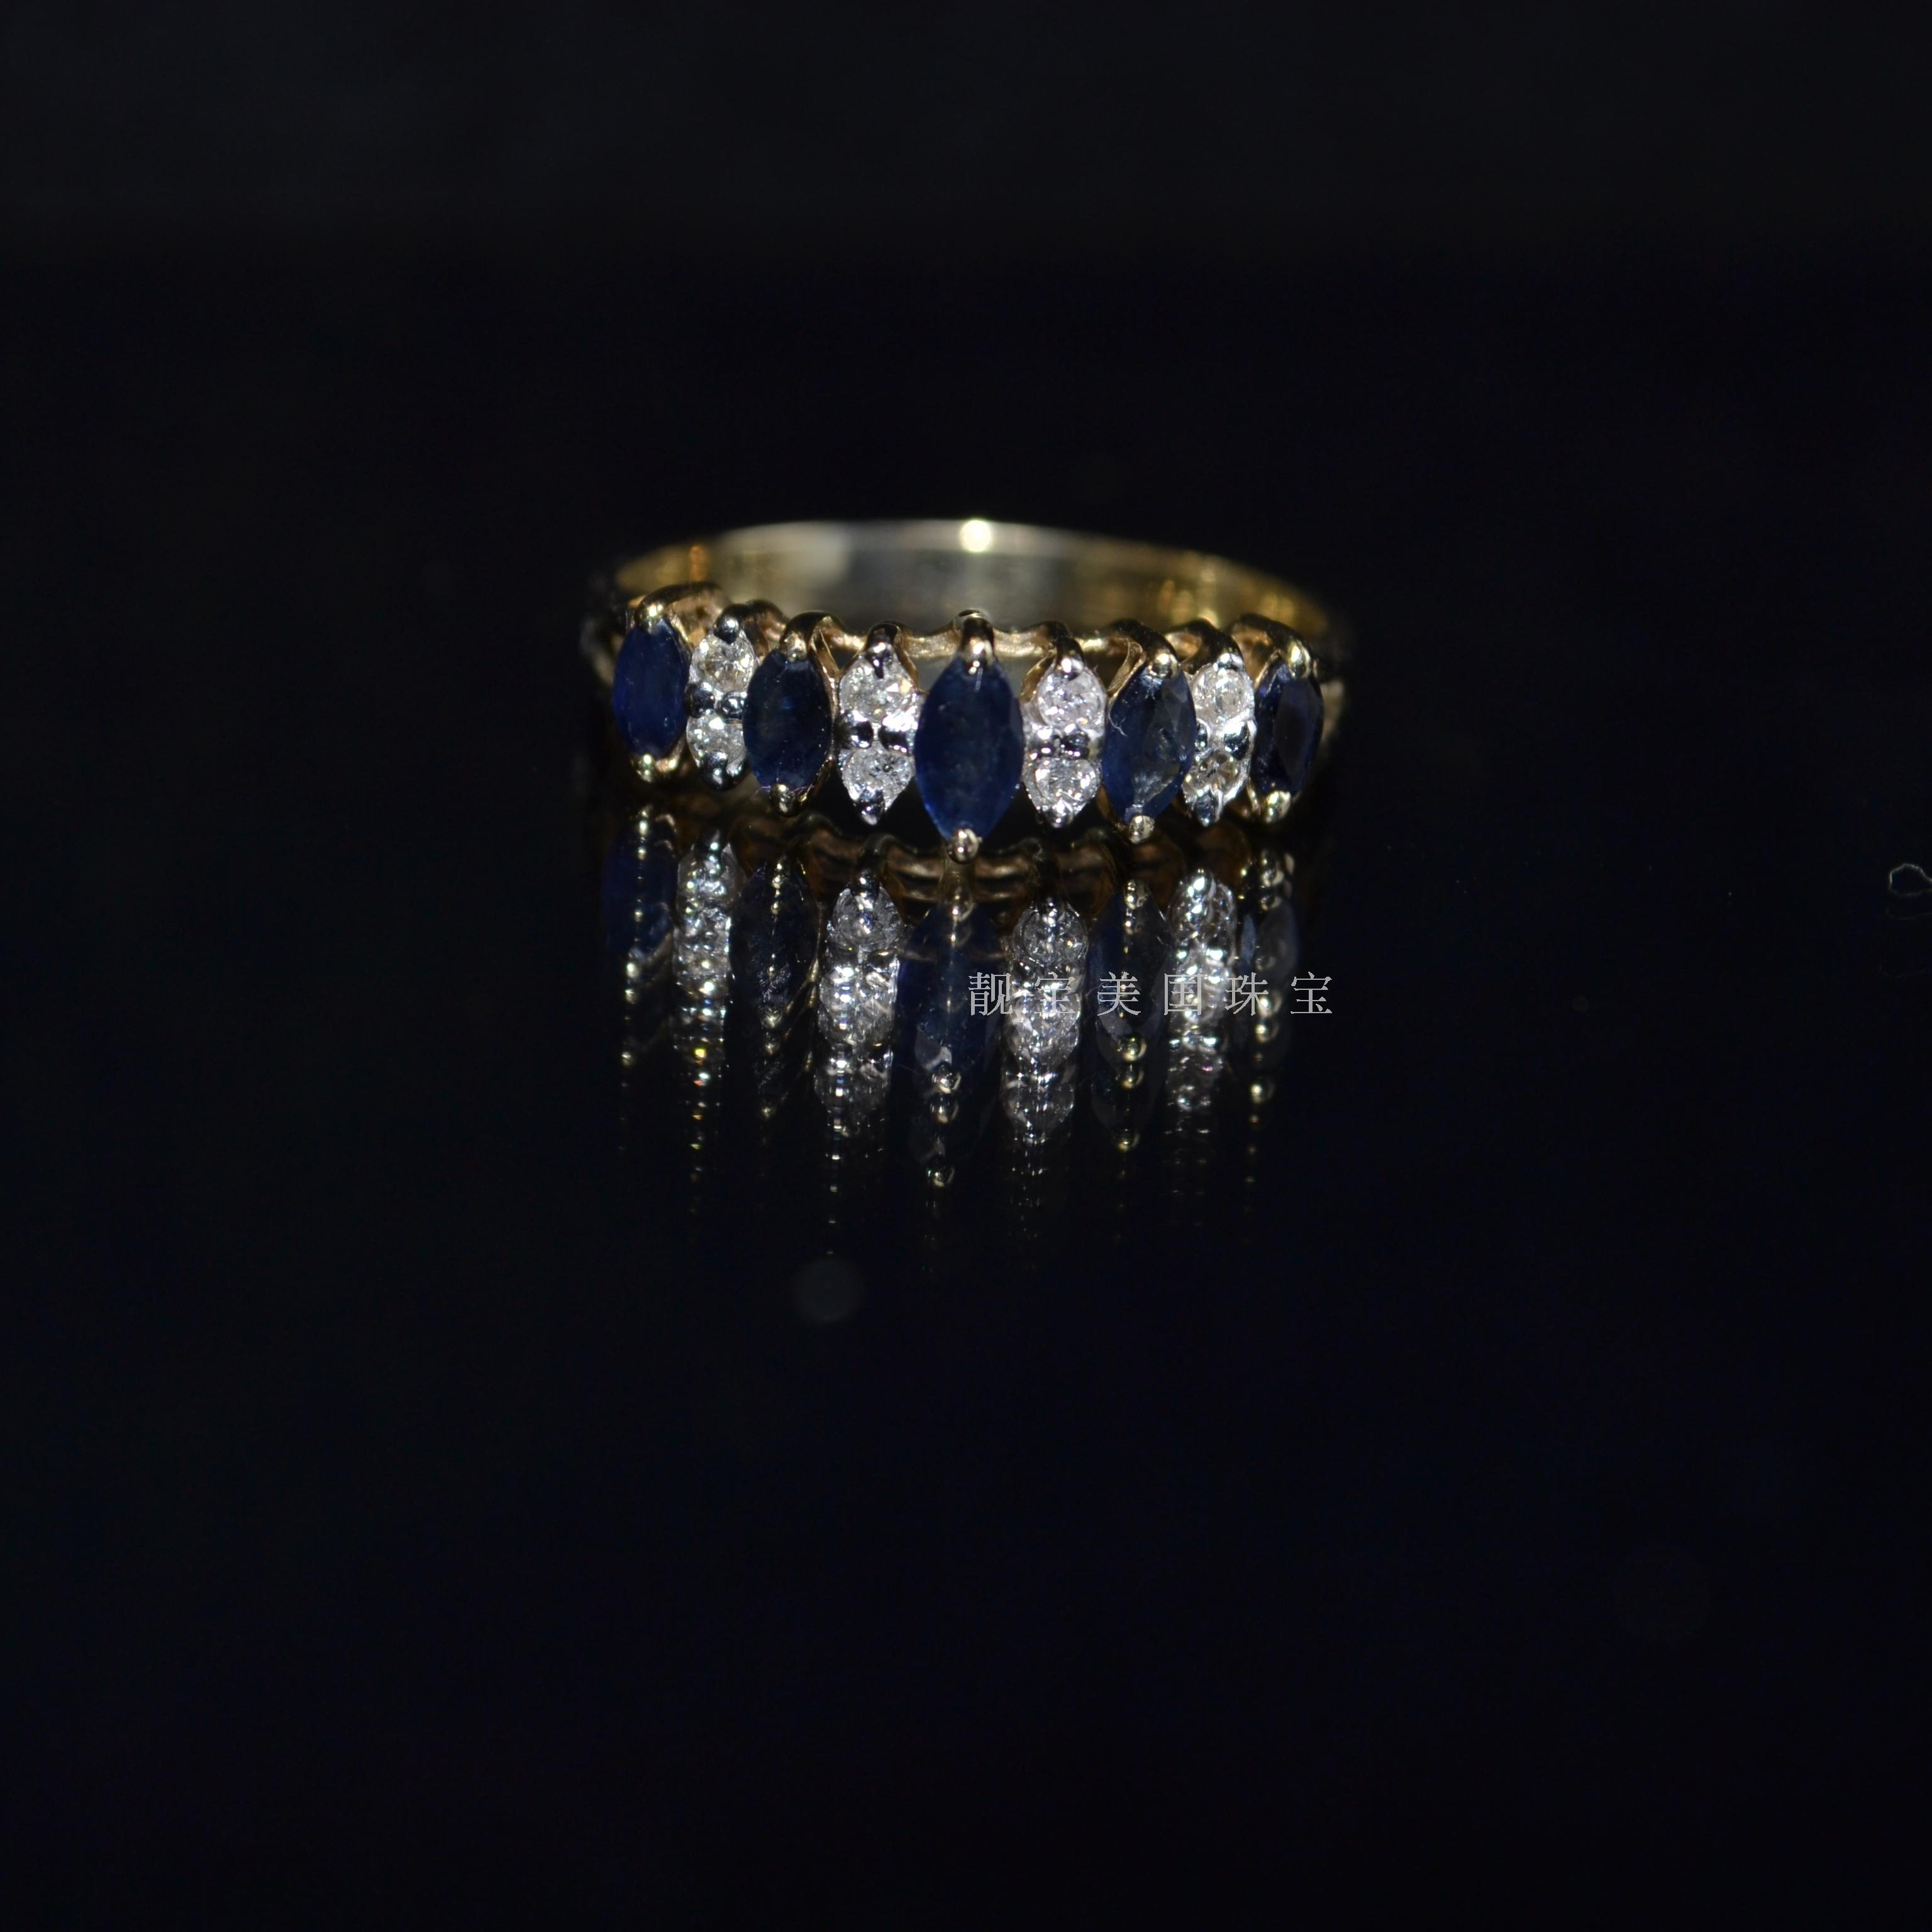 14k Gold 1 carat olive Sri Lanka natural diamond sapphire ring ring ring ring without flaw